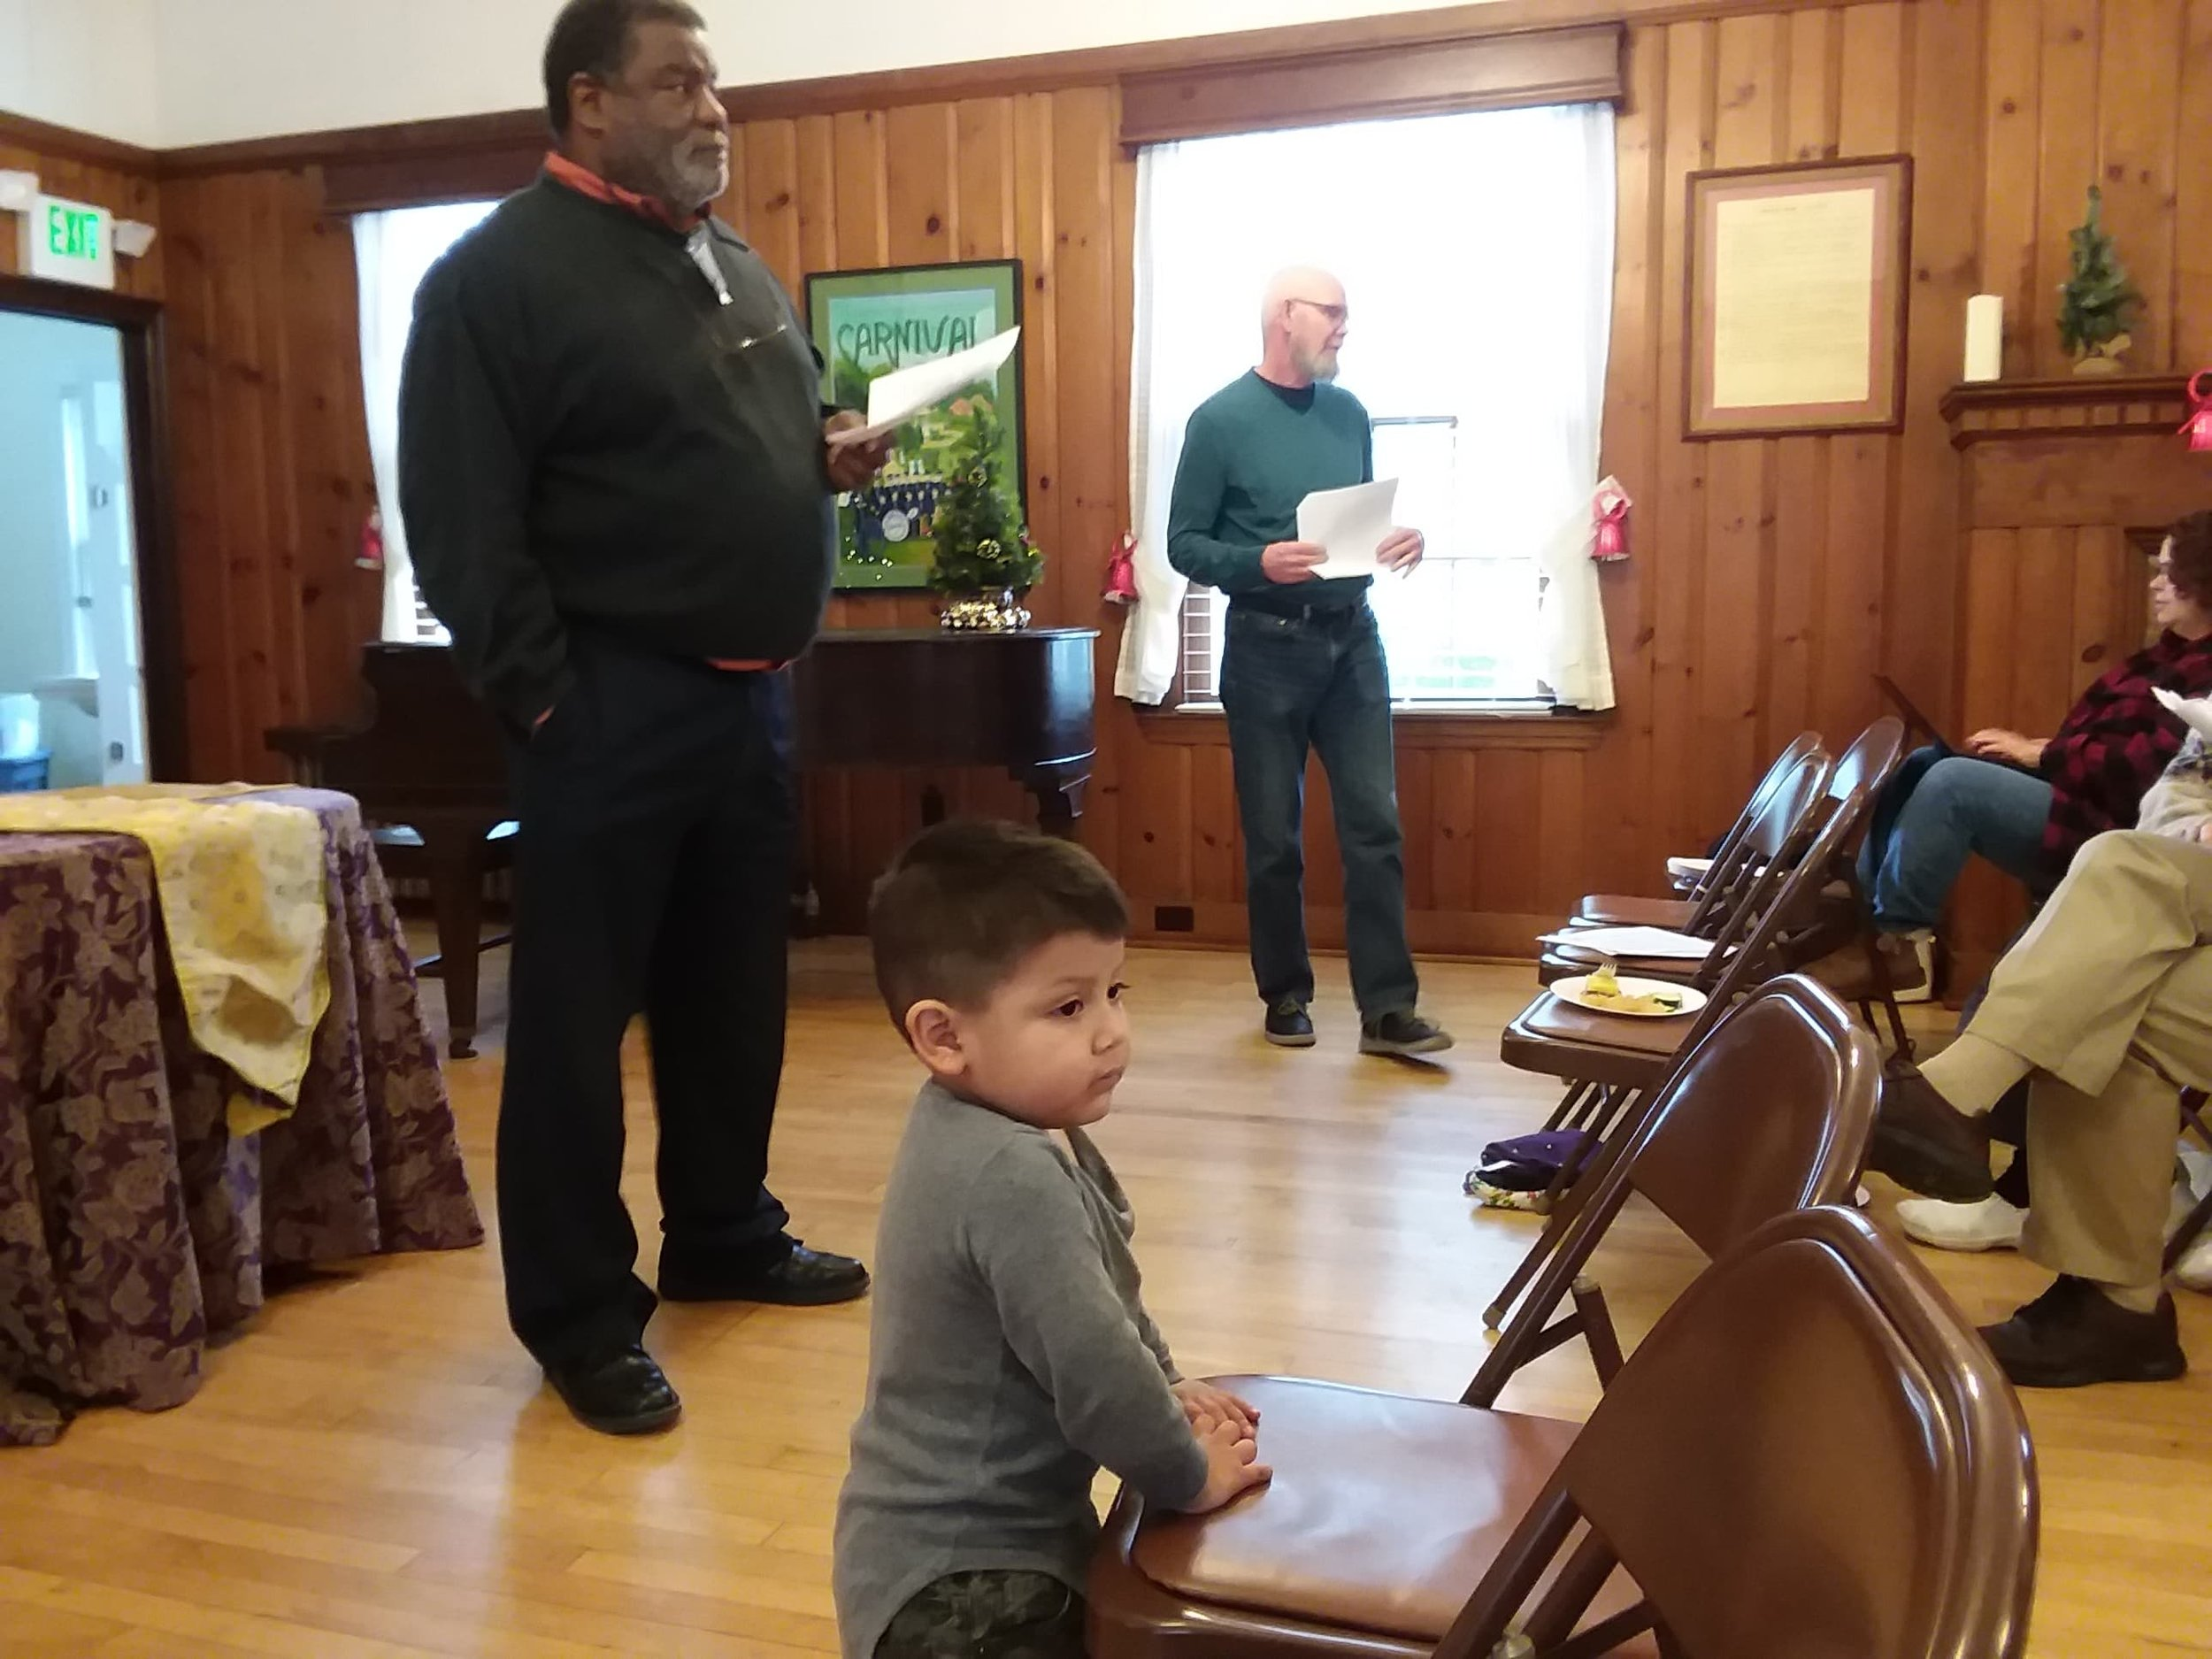 Treasurer William Taylor and Moderator Mike Sisco conducting the Annual Congregational Meeting (with support from Angel Gonzalez Morales).